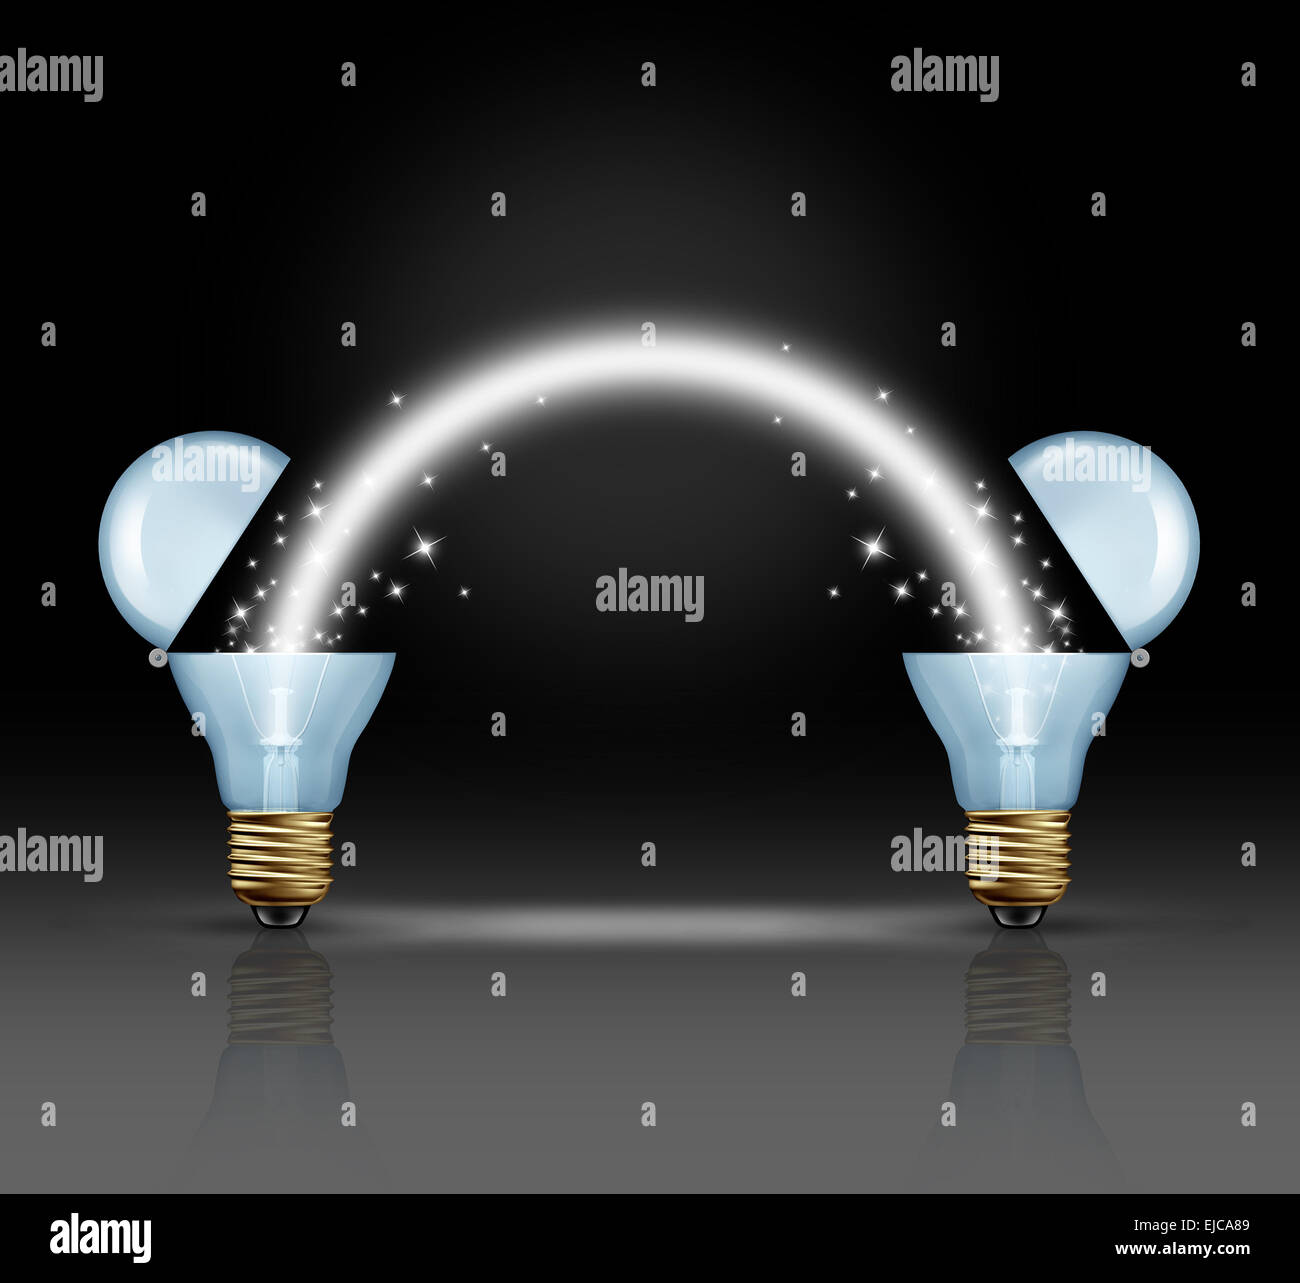 Idea teamwork concept as two open light bulbs glowing a light to connect to each other as a unity symbol of innovation - Stock Image